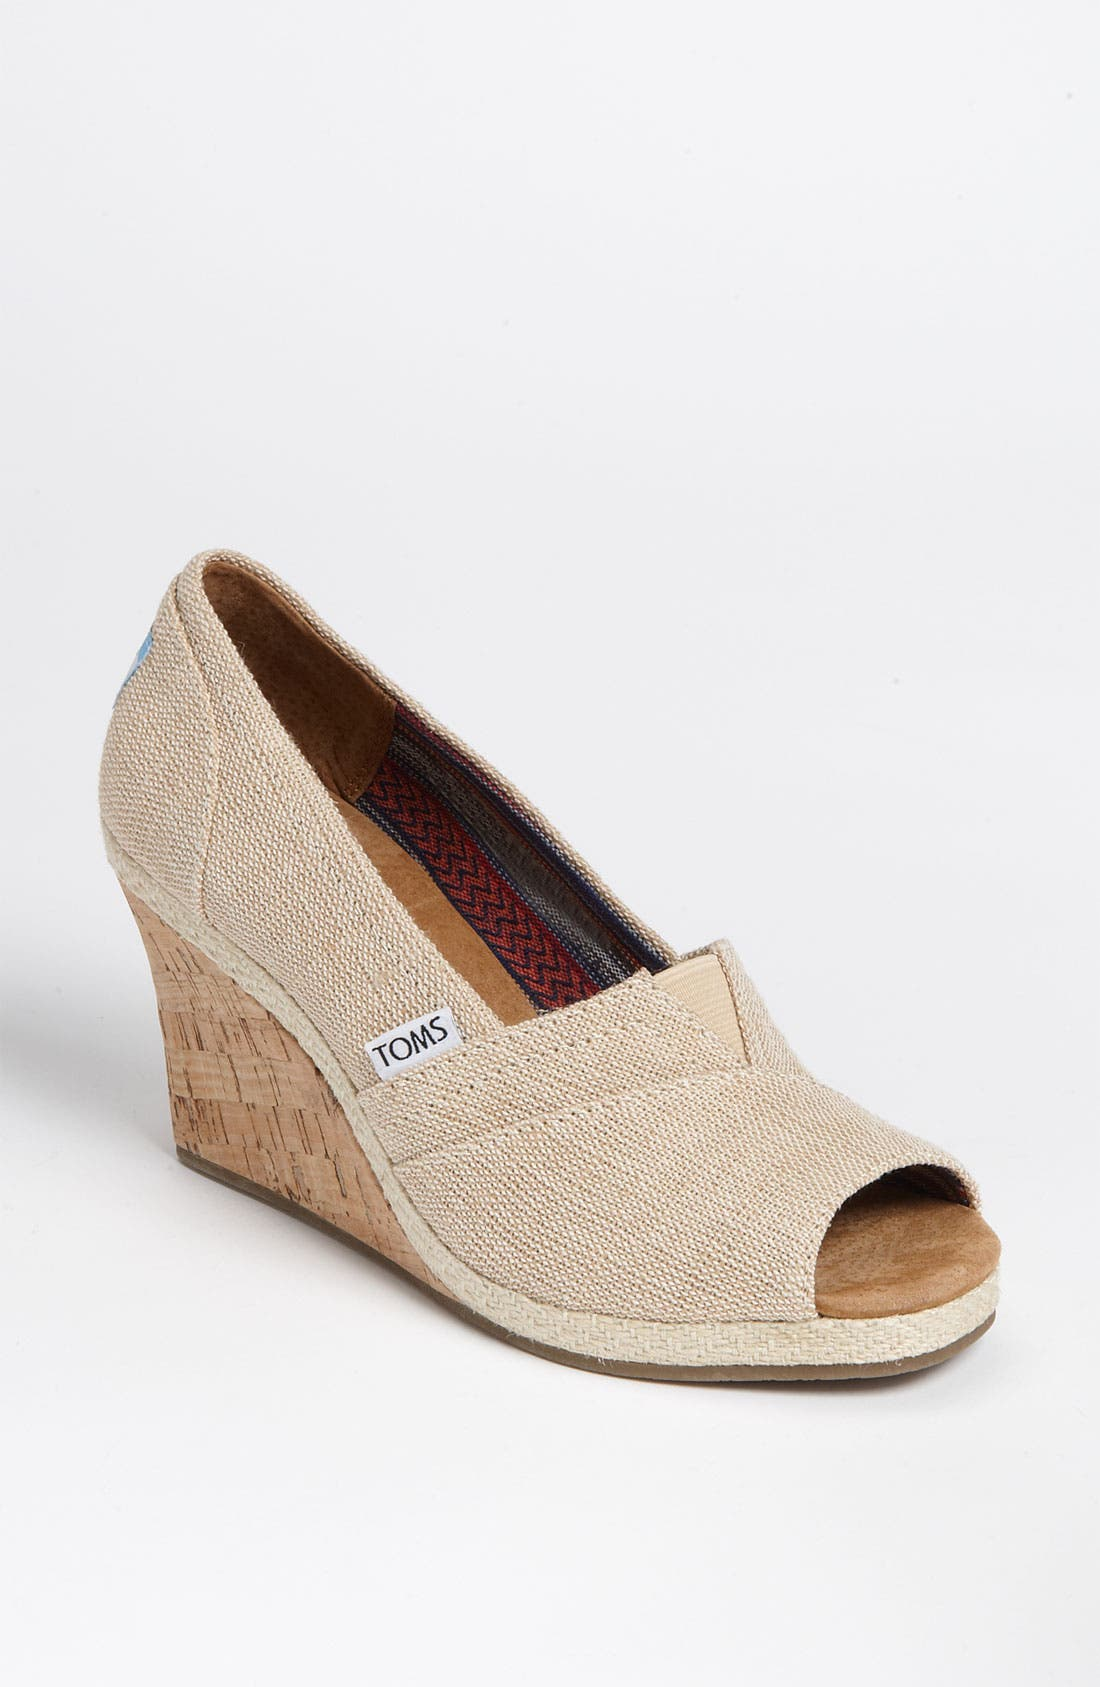 Main Image - TOMS 'Amery' Wedge